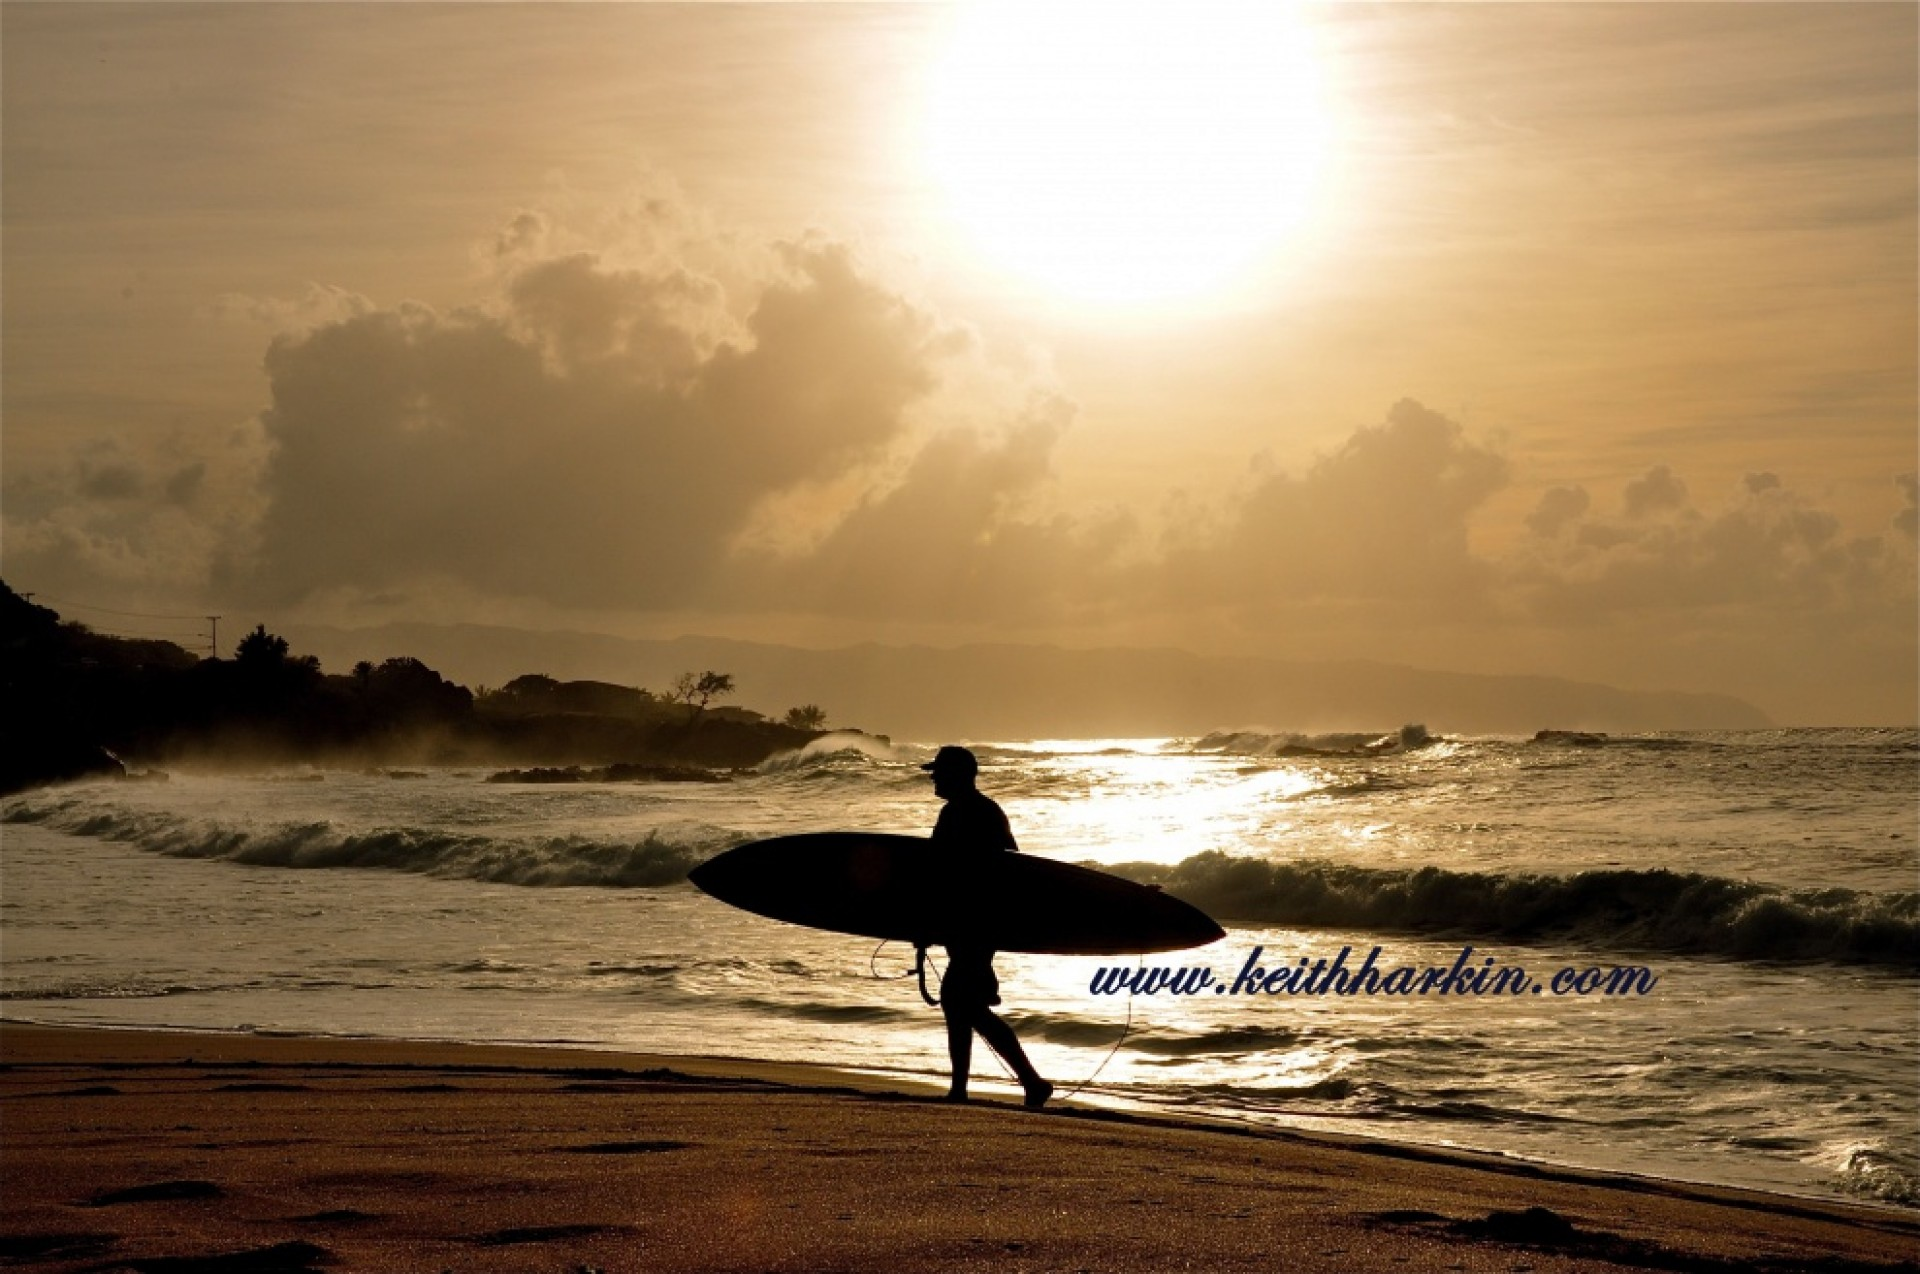 Keith Harkin 's photo of Waimea Bay